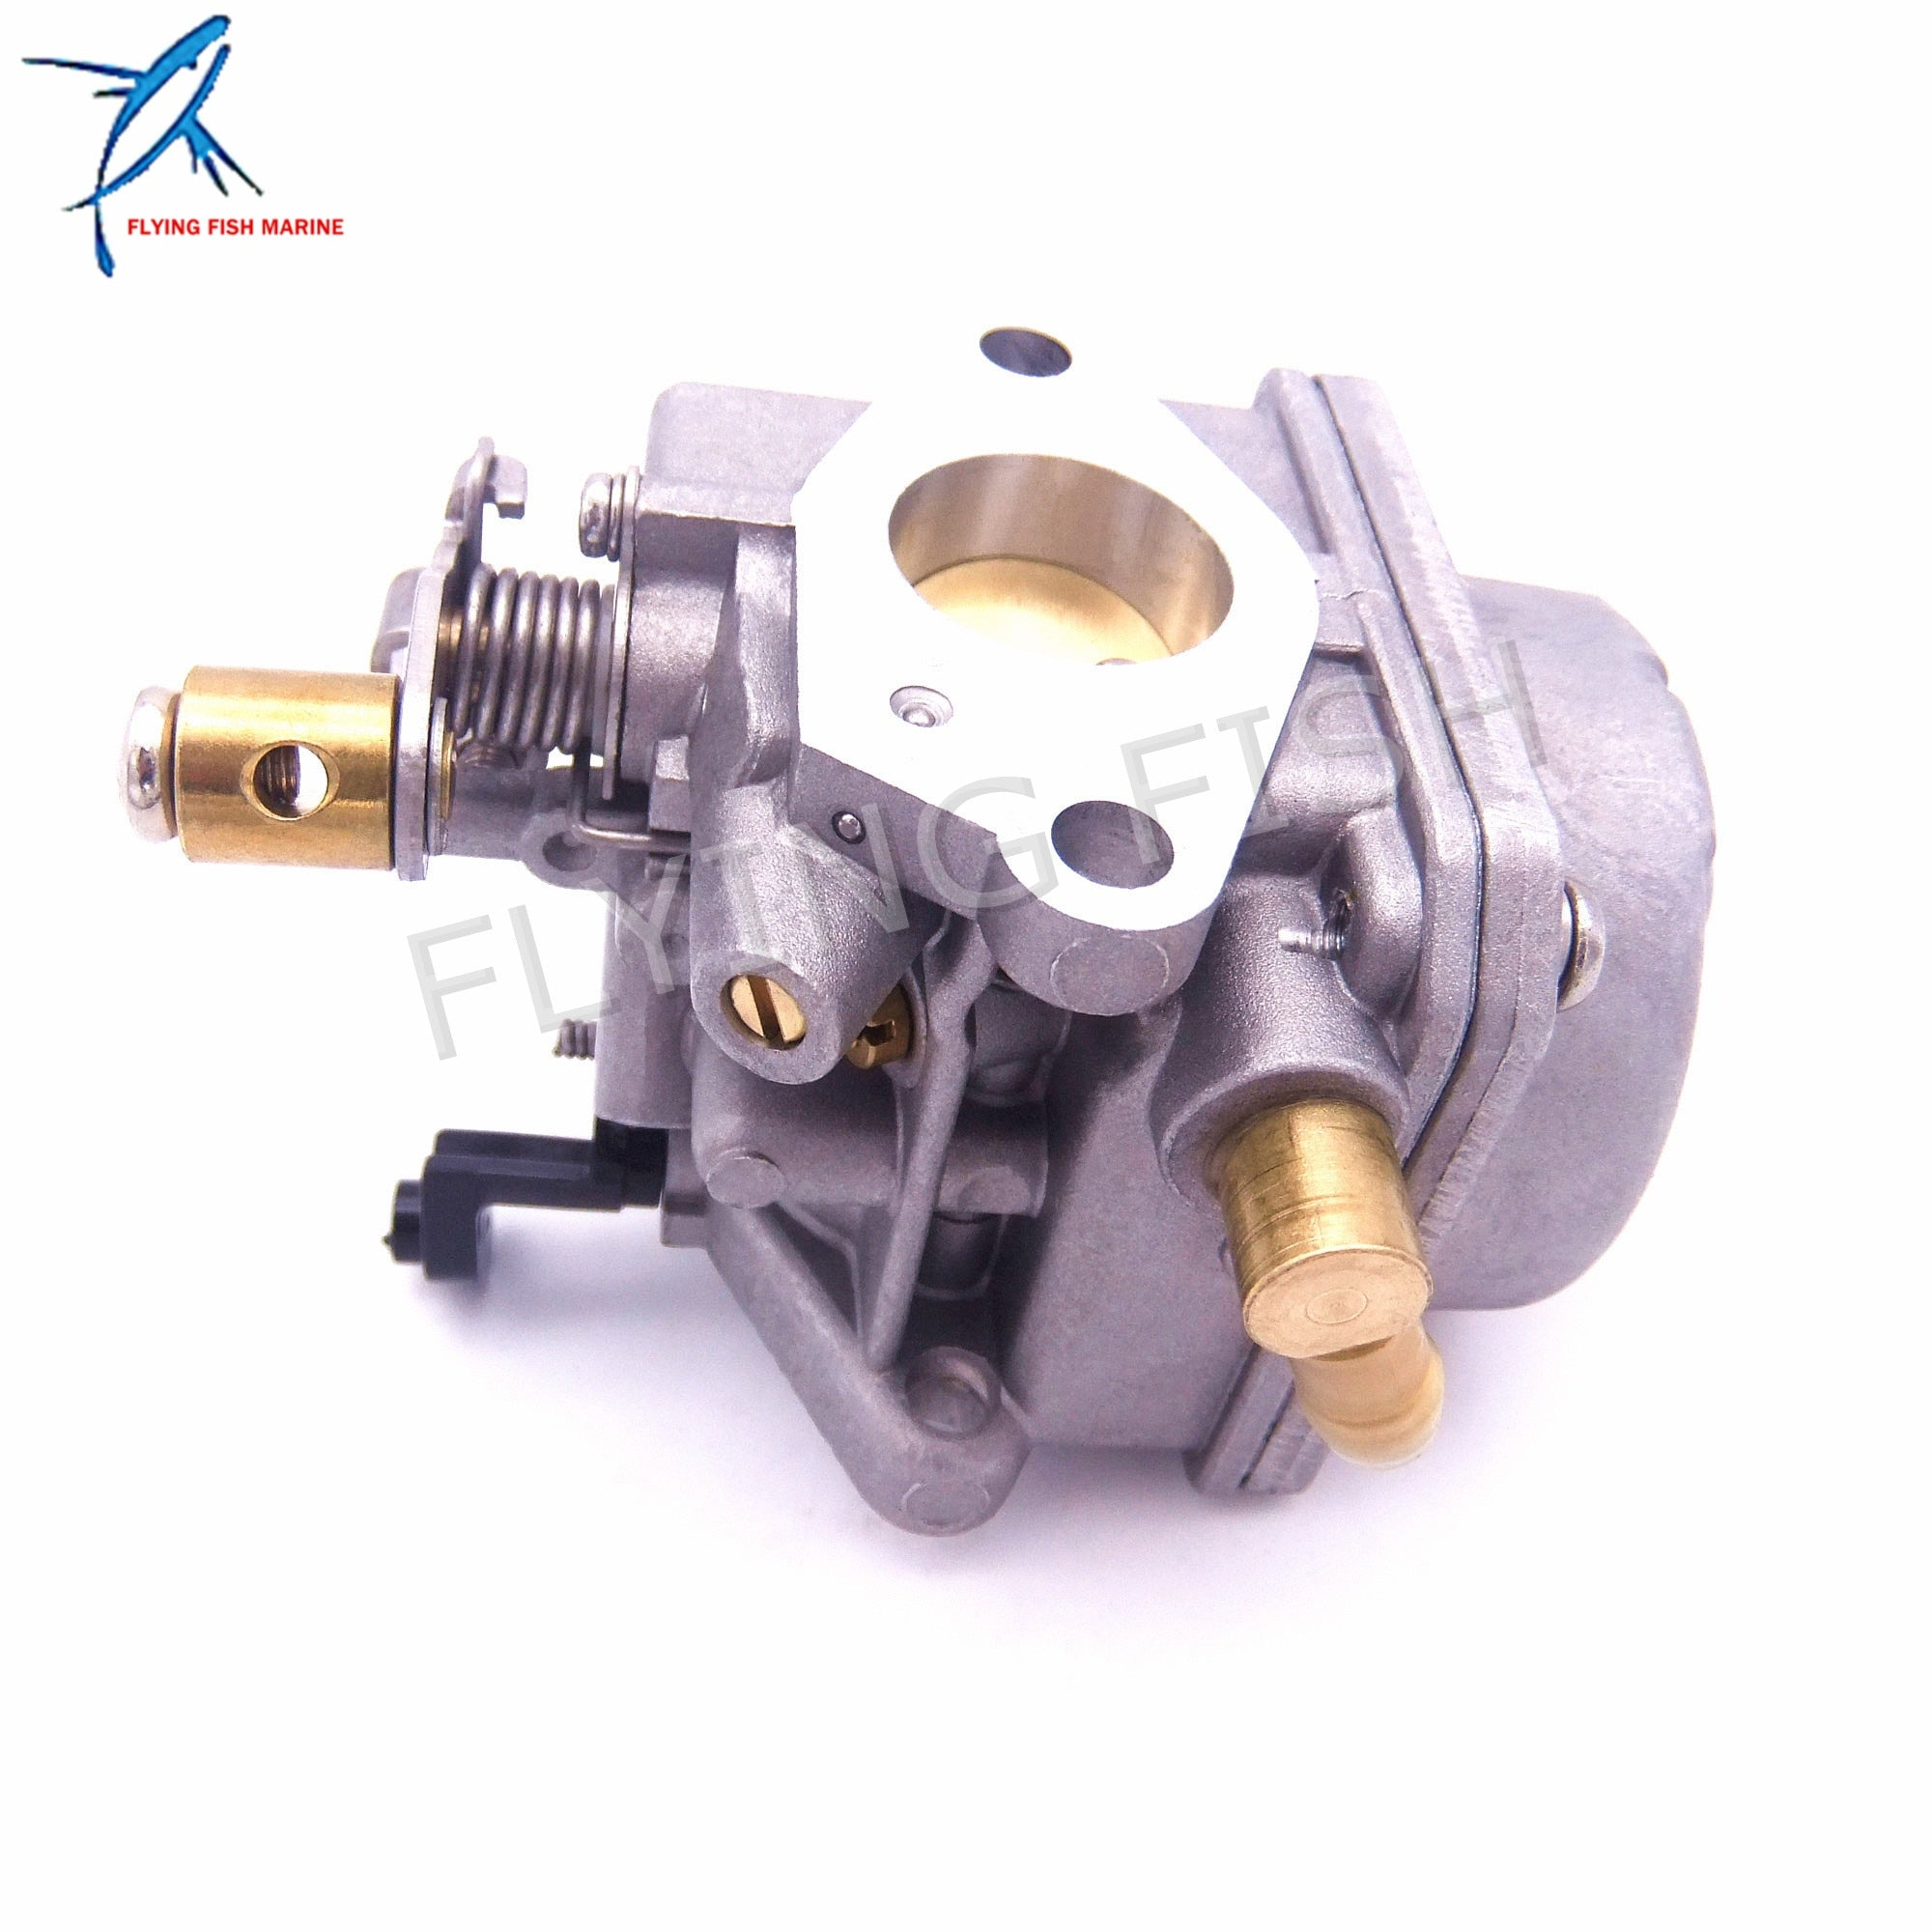 Outboard Engine Carburetor Assy 6BX-14301-10 6BX-14301-11 6BX-14301-00 for Yamaha 4-stroke F6 Boat Motor Free Shipping